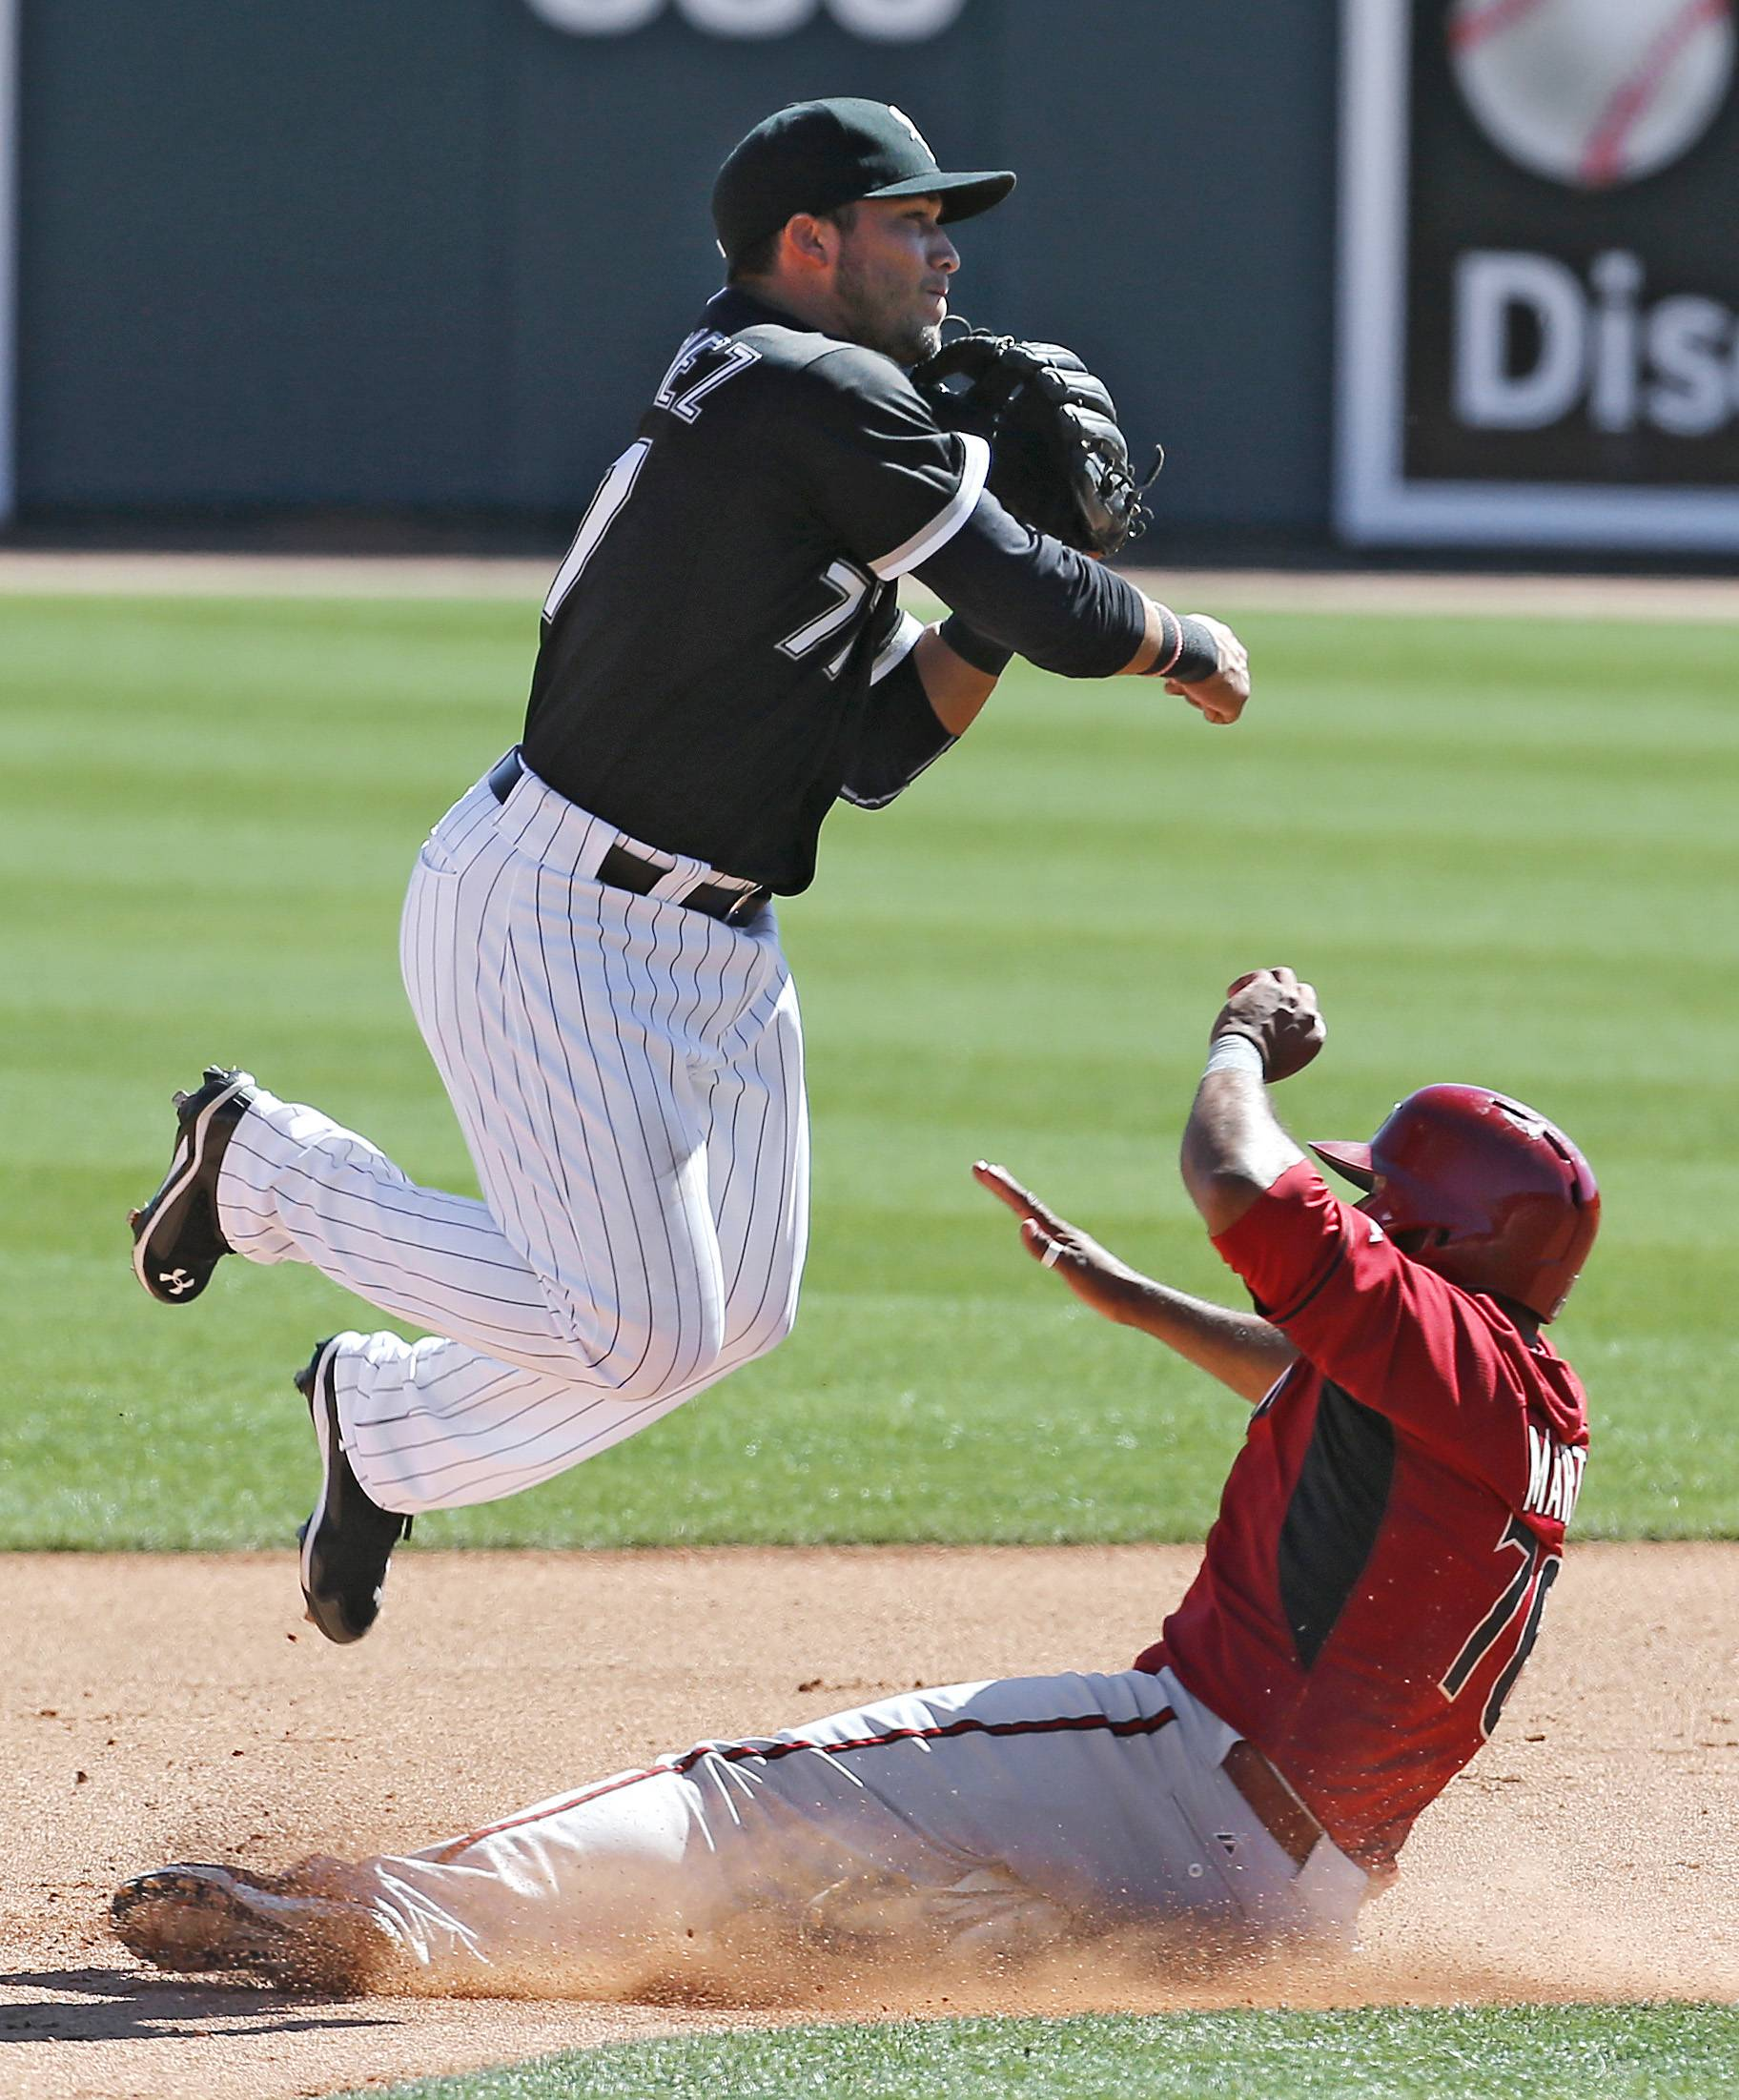 Chicago White Sox second baseman Carlos Sanchez jumps over Arizona Diamondbacks' Andy Marte to complete a double play in the fourth inning during an exhibition baseball game in Glendale, Ariz., Saturday, March 8, 2014.